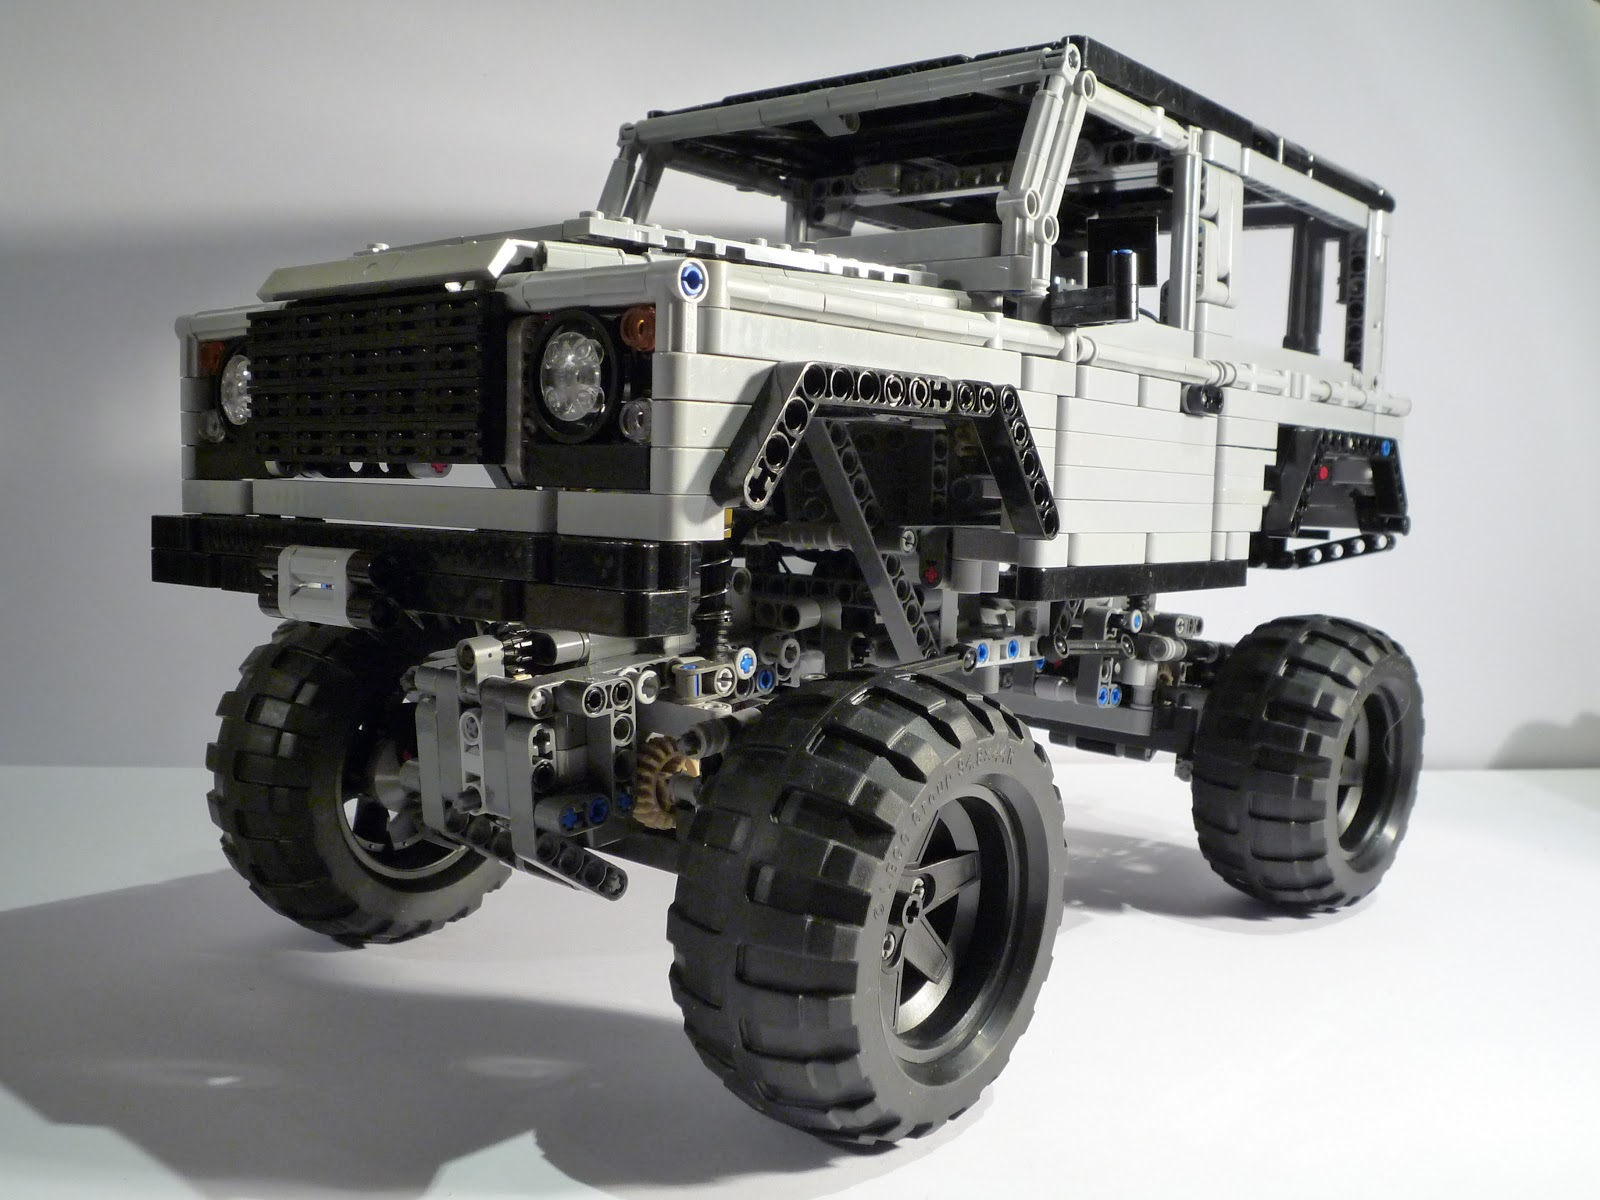 landrover defender 90 on 9398 chassis jaaptechnic. Black Bedroom Furniture Sets. Home Design Ideas